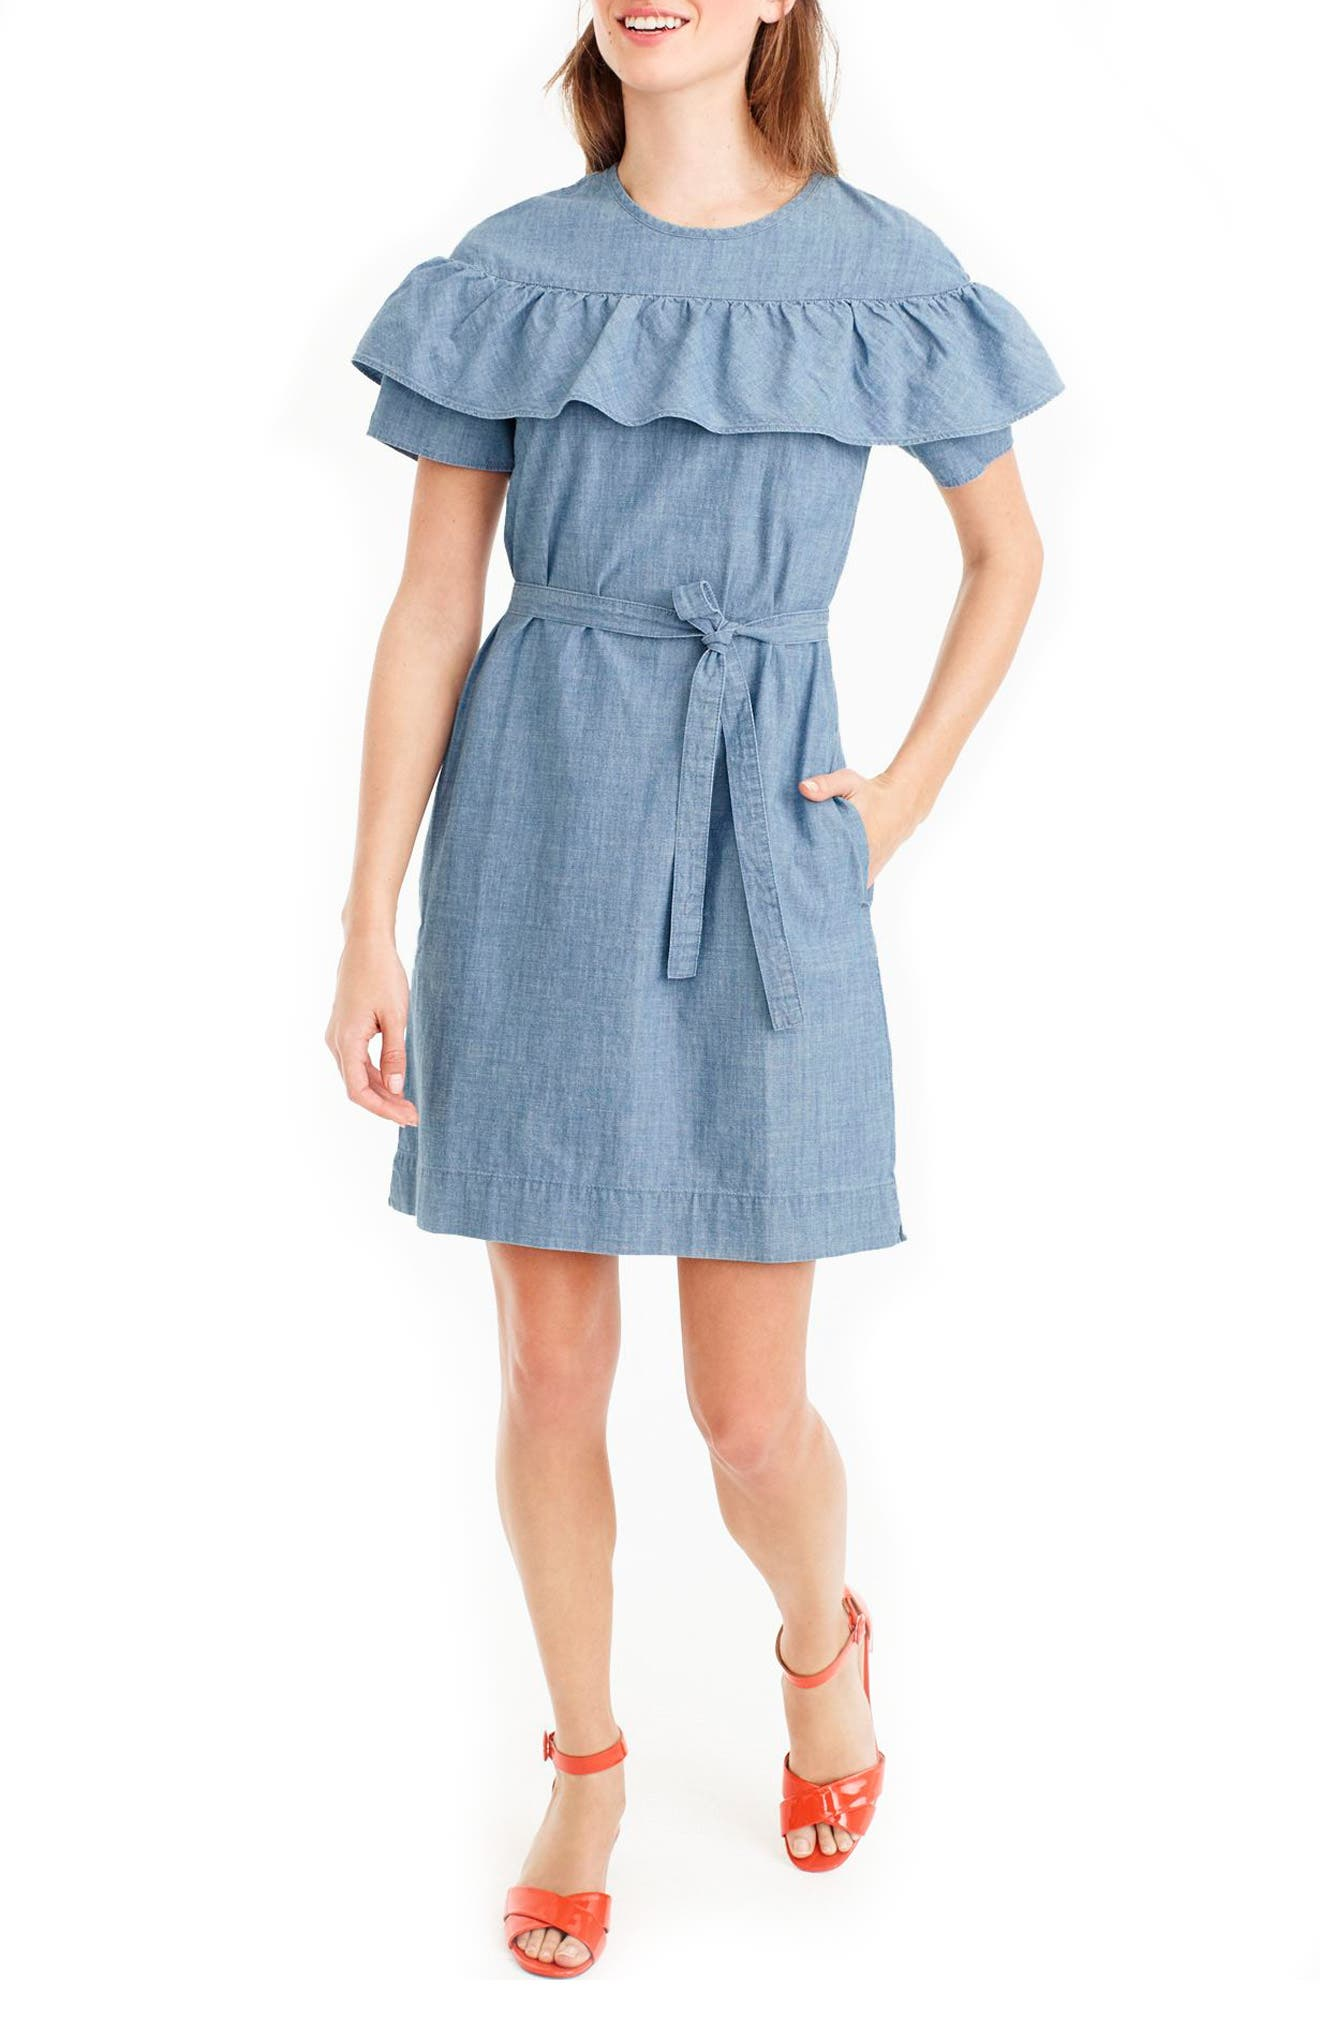 Chambray Maternity Dress Light Blue Ombre Denim Maternity